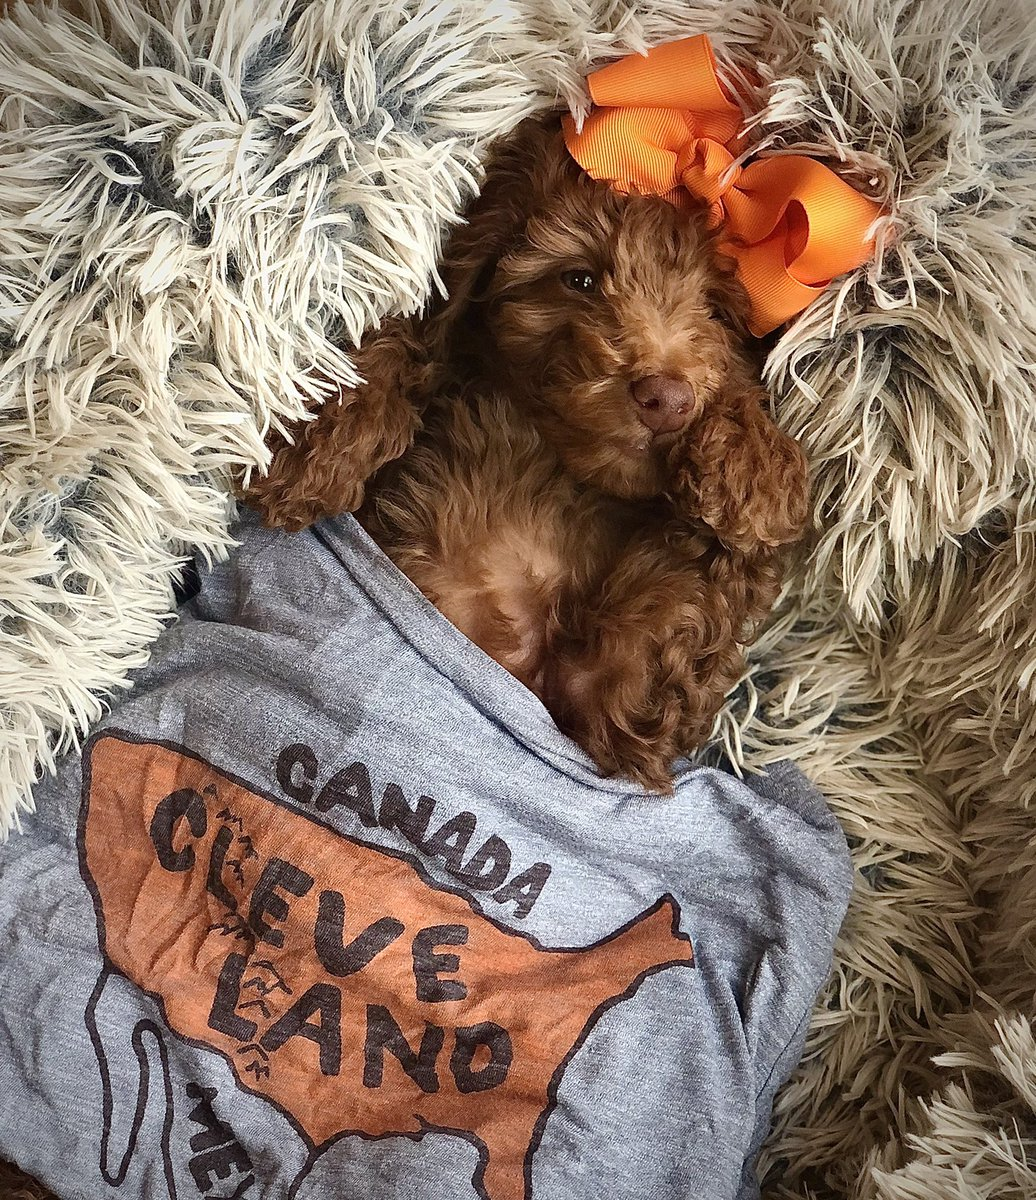 @clevelanddotcom Francine the puppy dawg is taking her pre-game nap 😴🐶 #Browns #WeWantMore